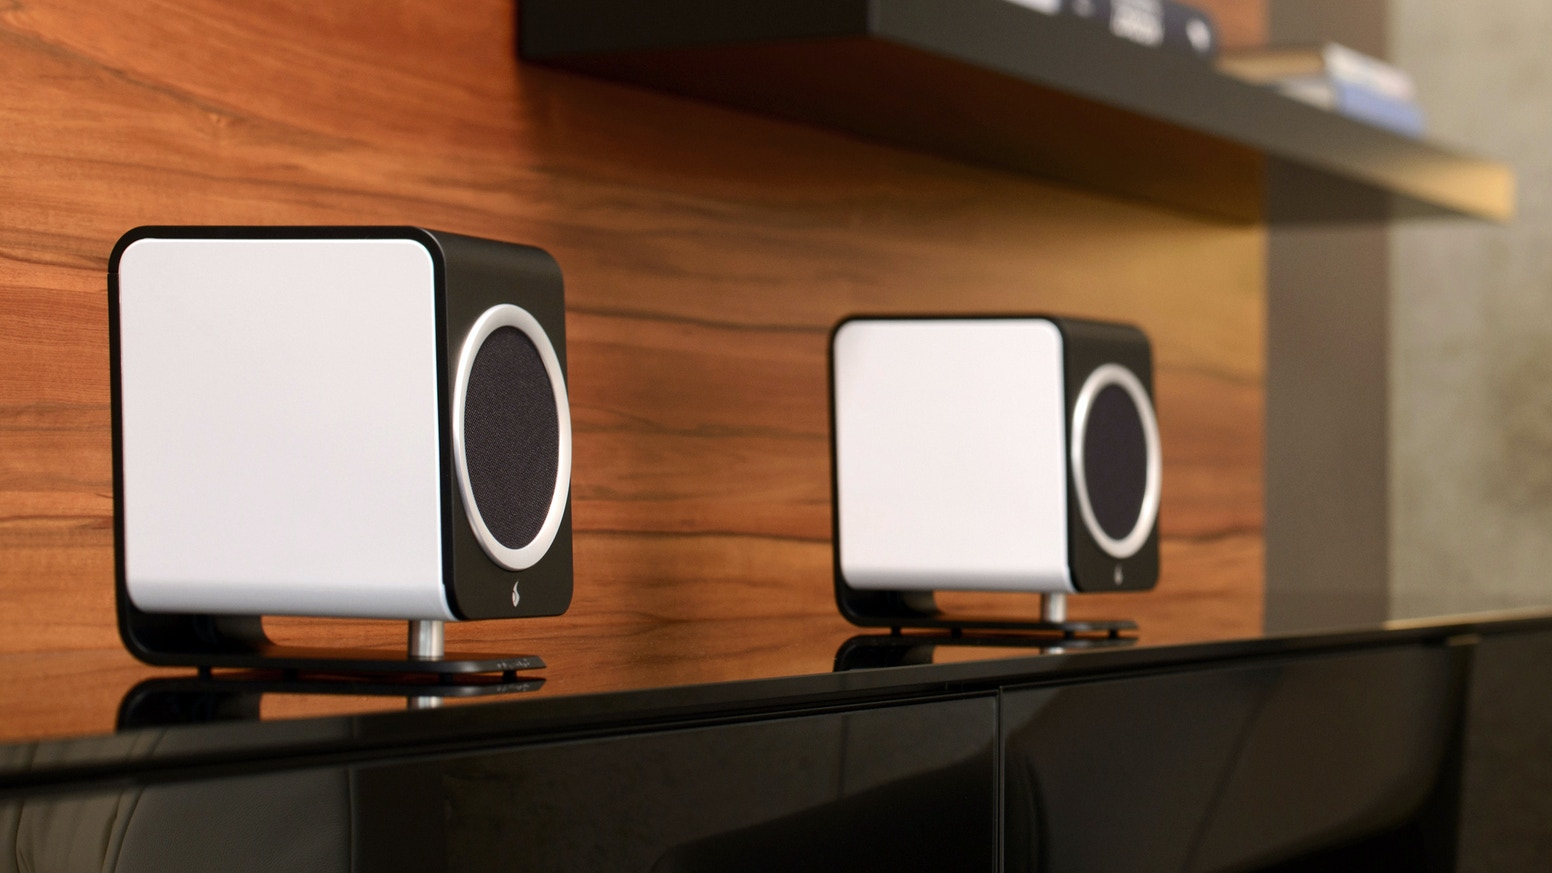 Essence The Worlds Best Computer Speaker System By Feniks Audio Magnetic Microprocessors Can Make High End Computers In Future Ultimate Award Winning Truly Quality Has Come To